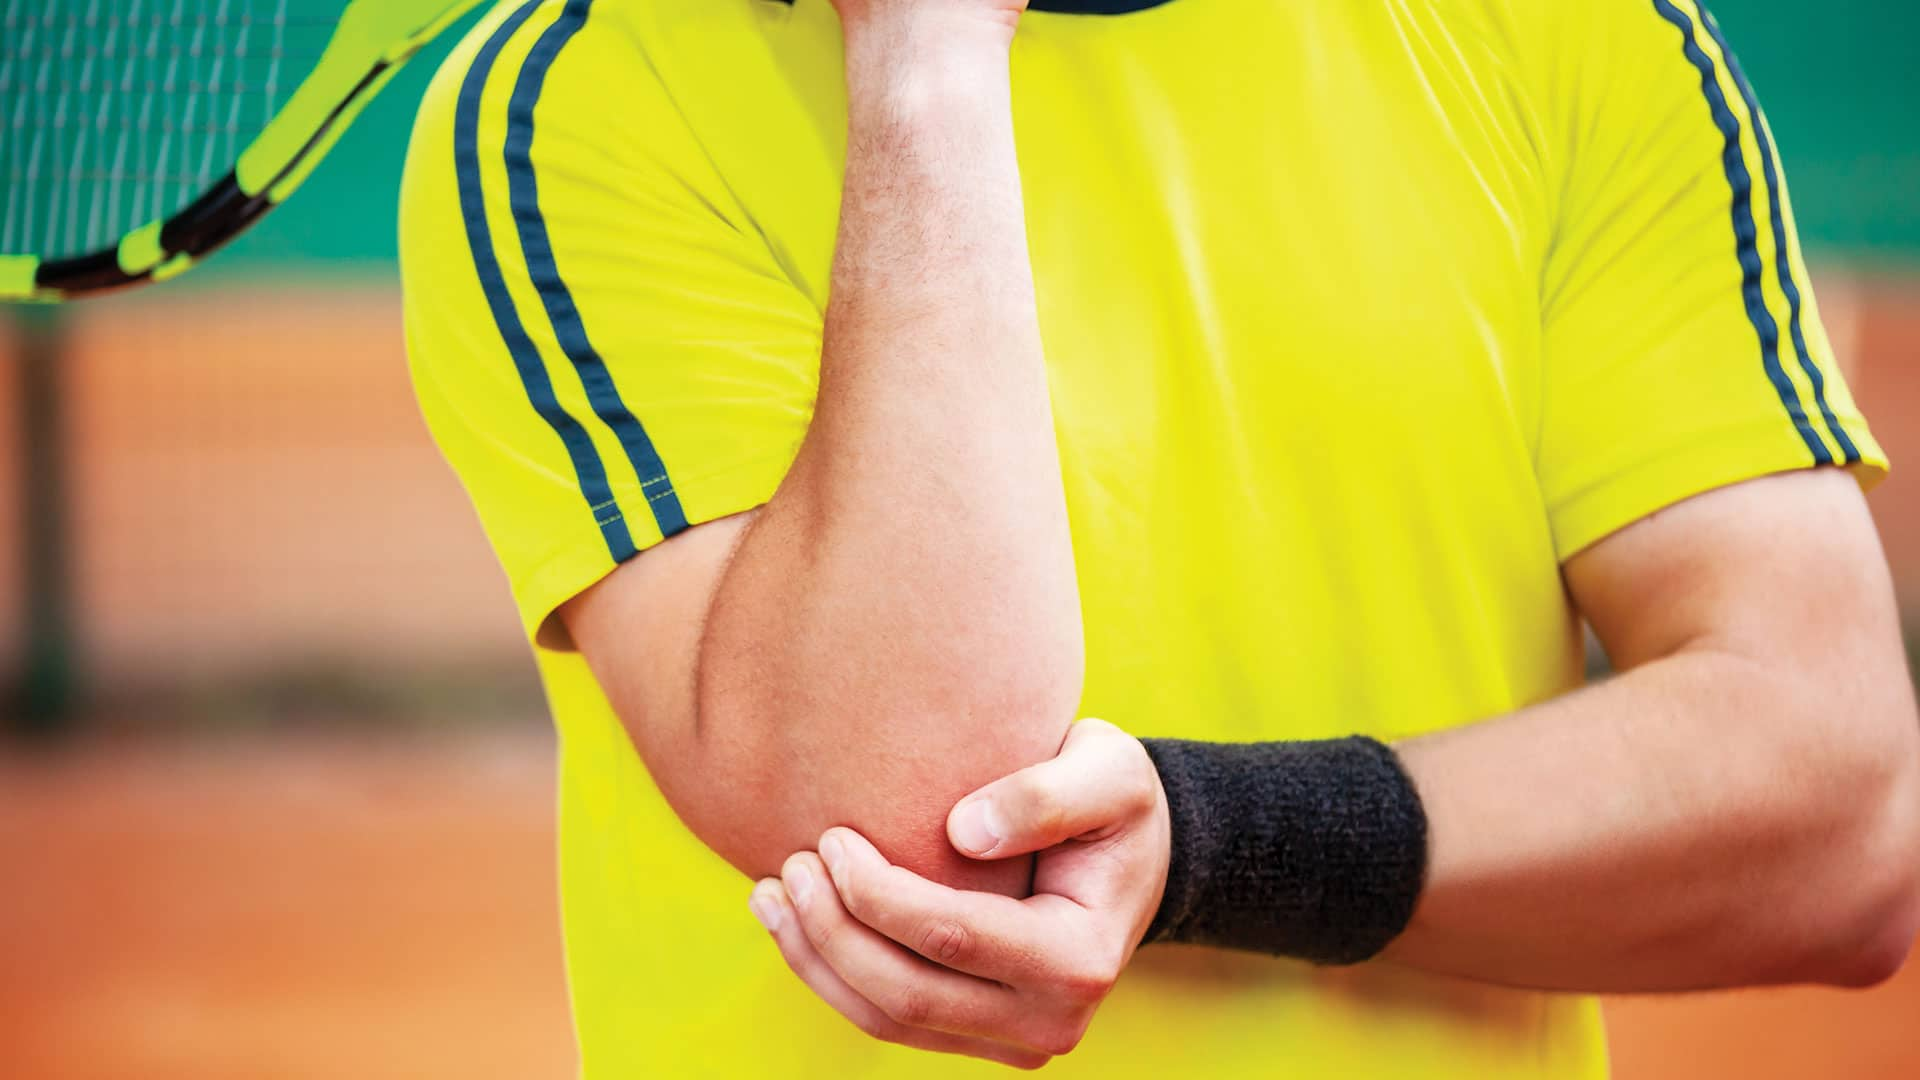 Elbow Common Injuries